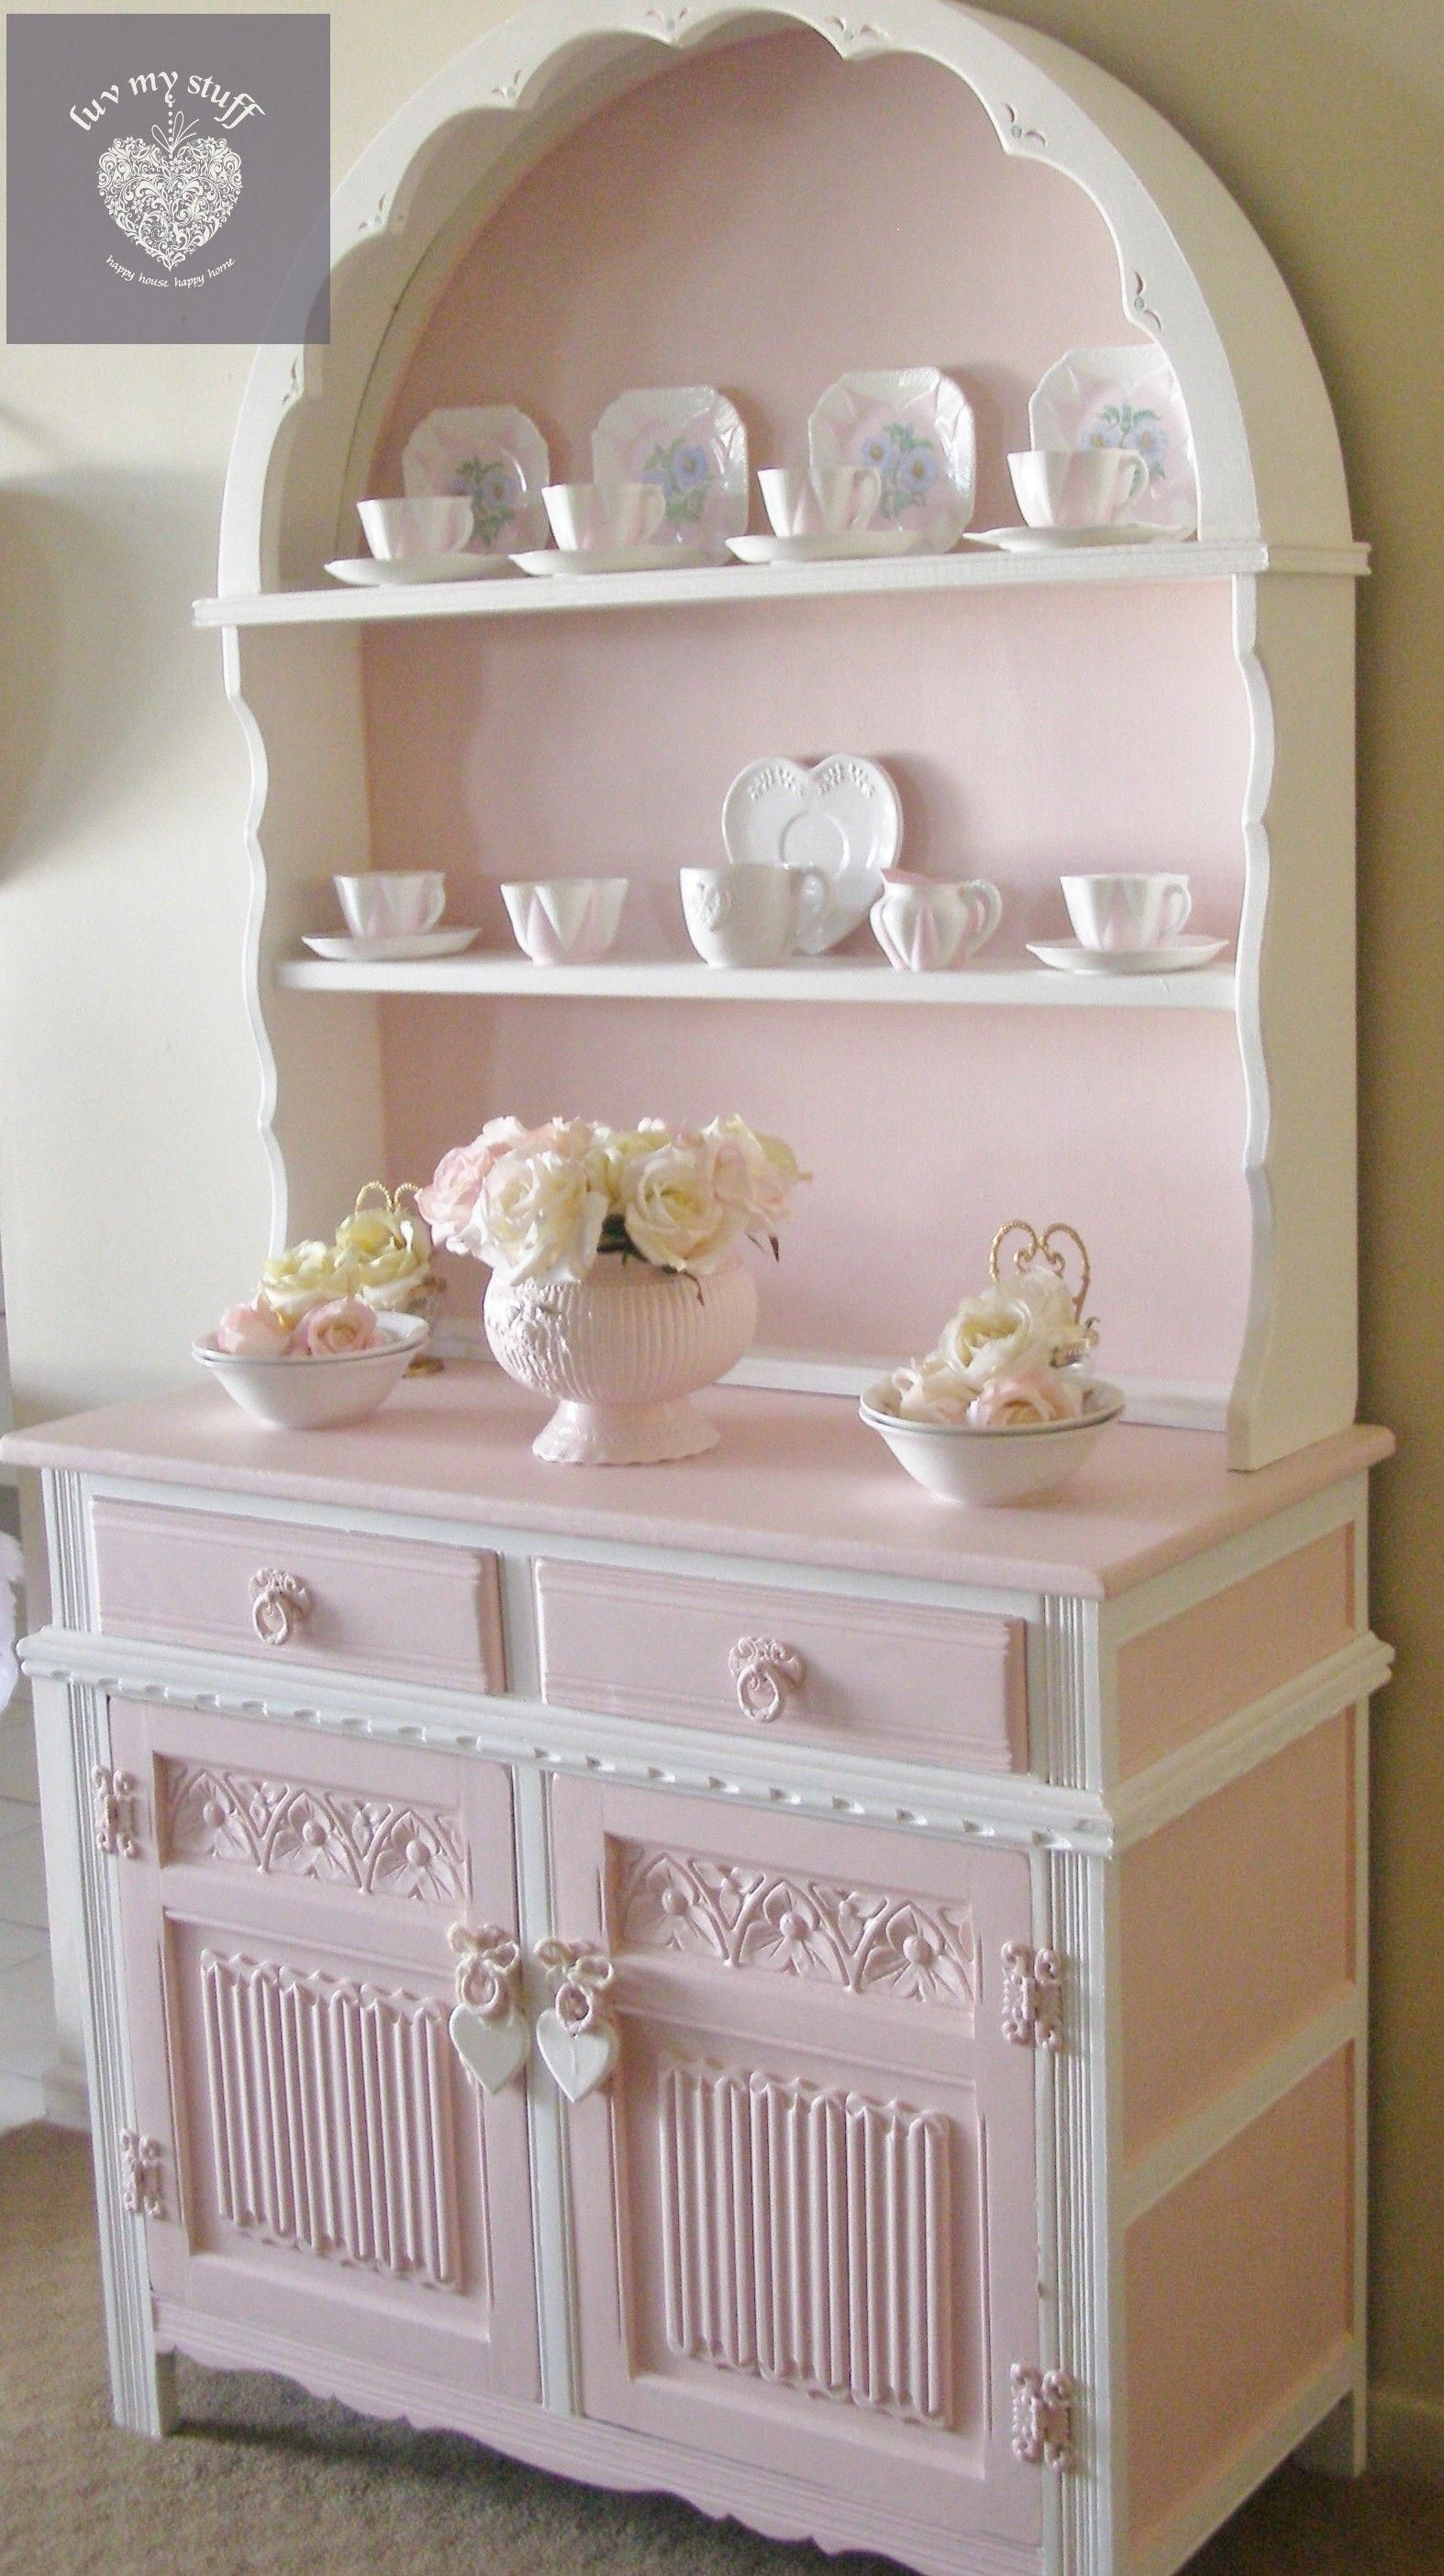 Home Decor Consignment Stores Near Me Shabby chic room